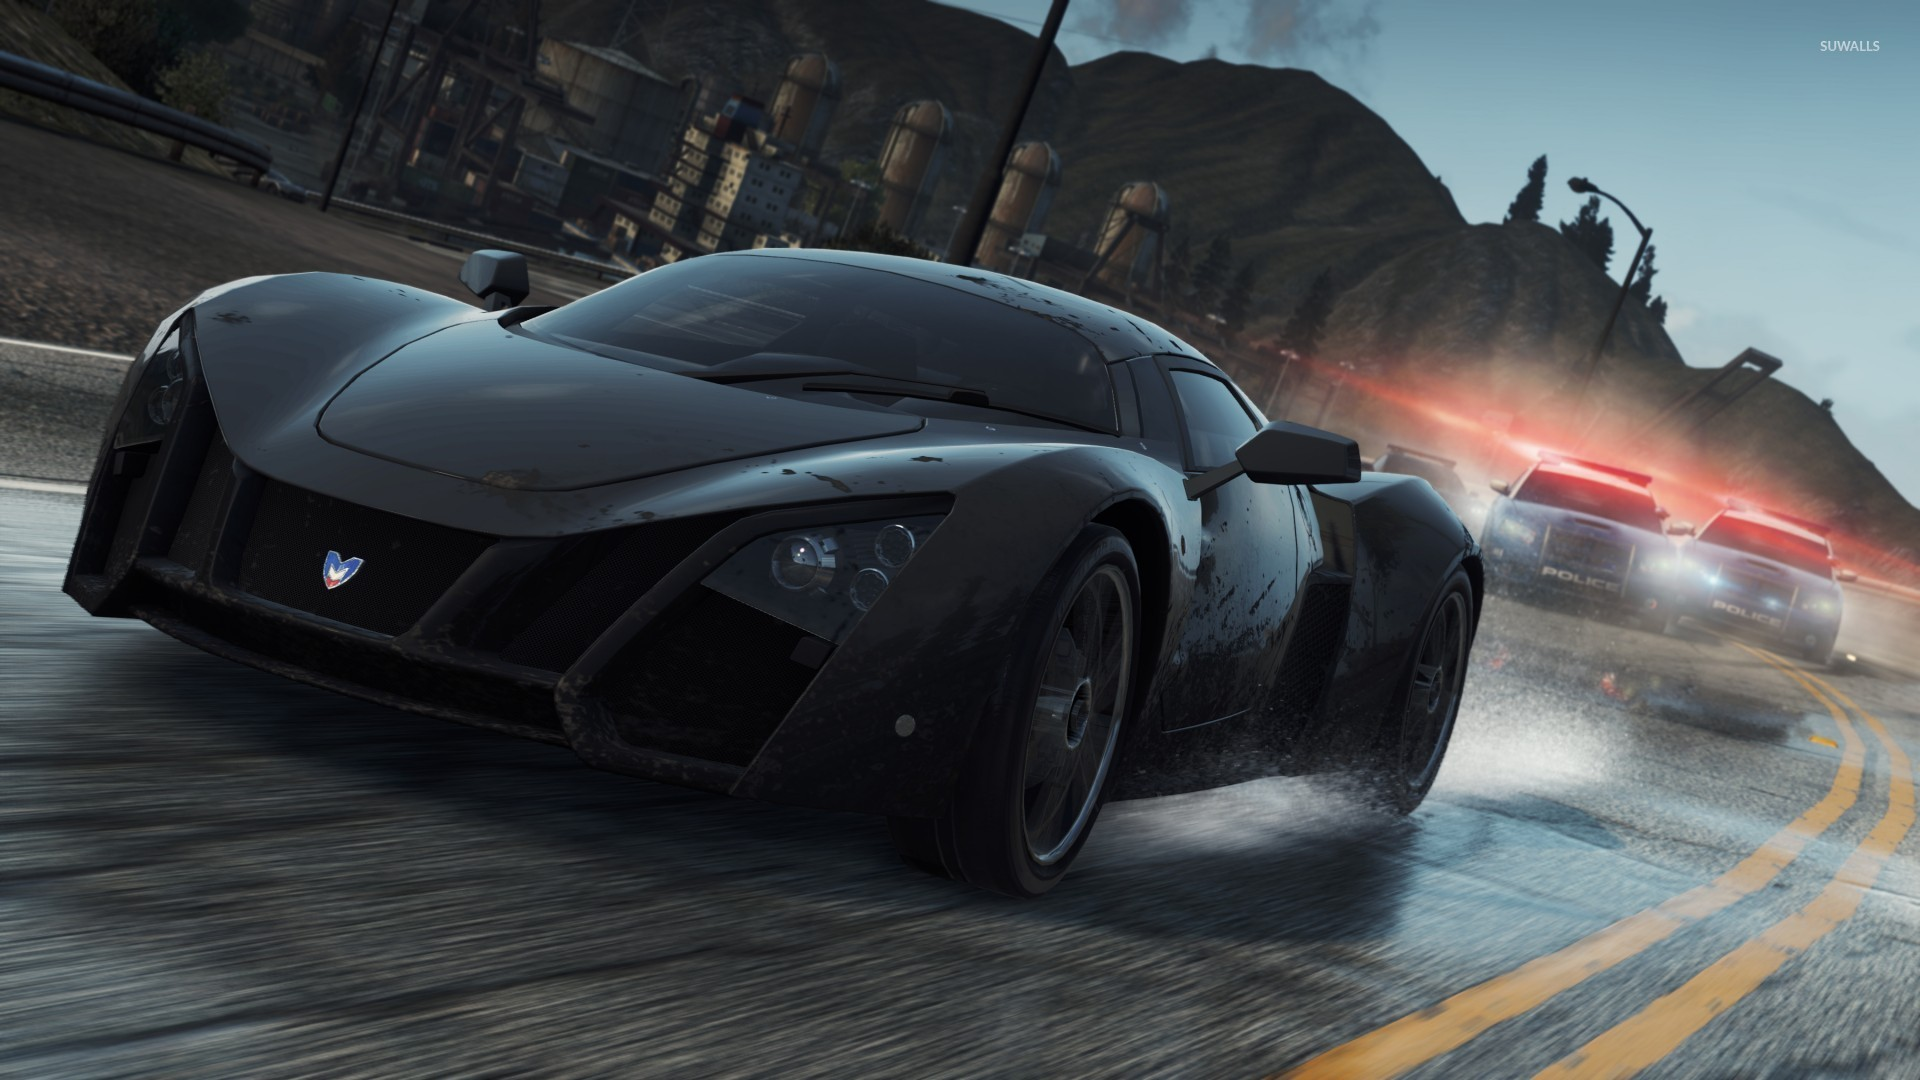 marussia b2 - need for speed: most wanted wallpaper - game